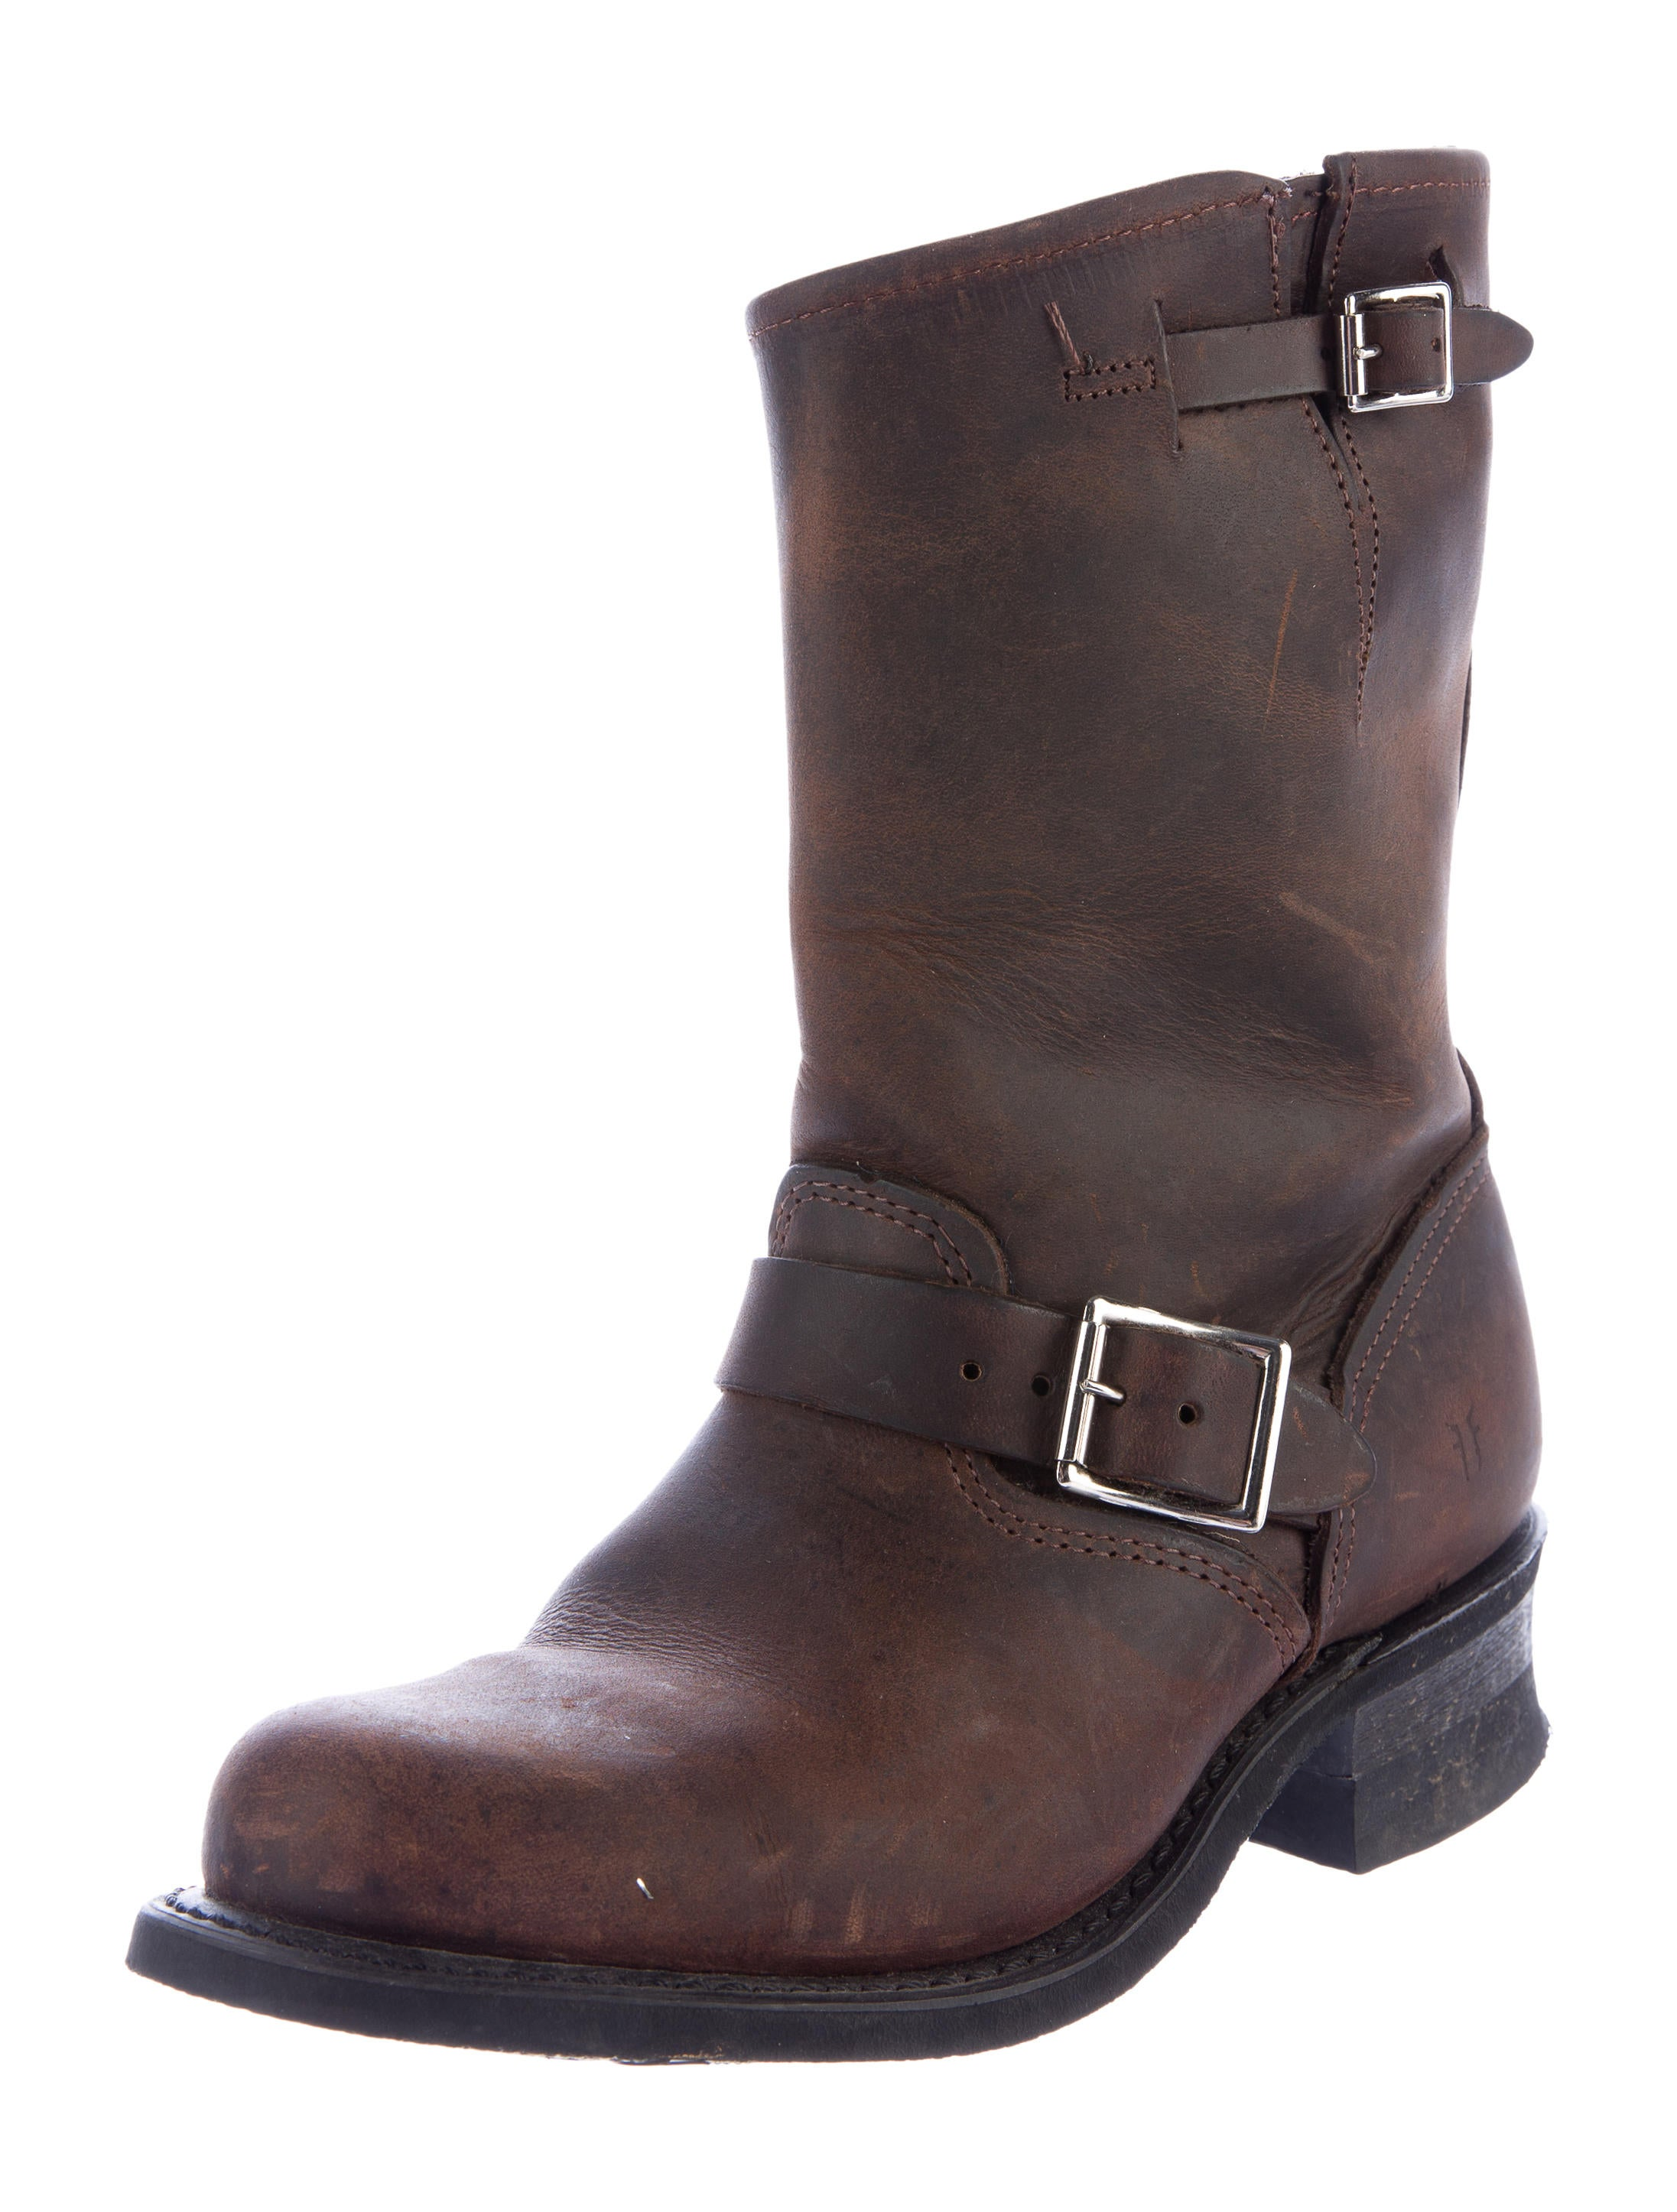 frye leather mid calf boots shoes wf821108 the realreal